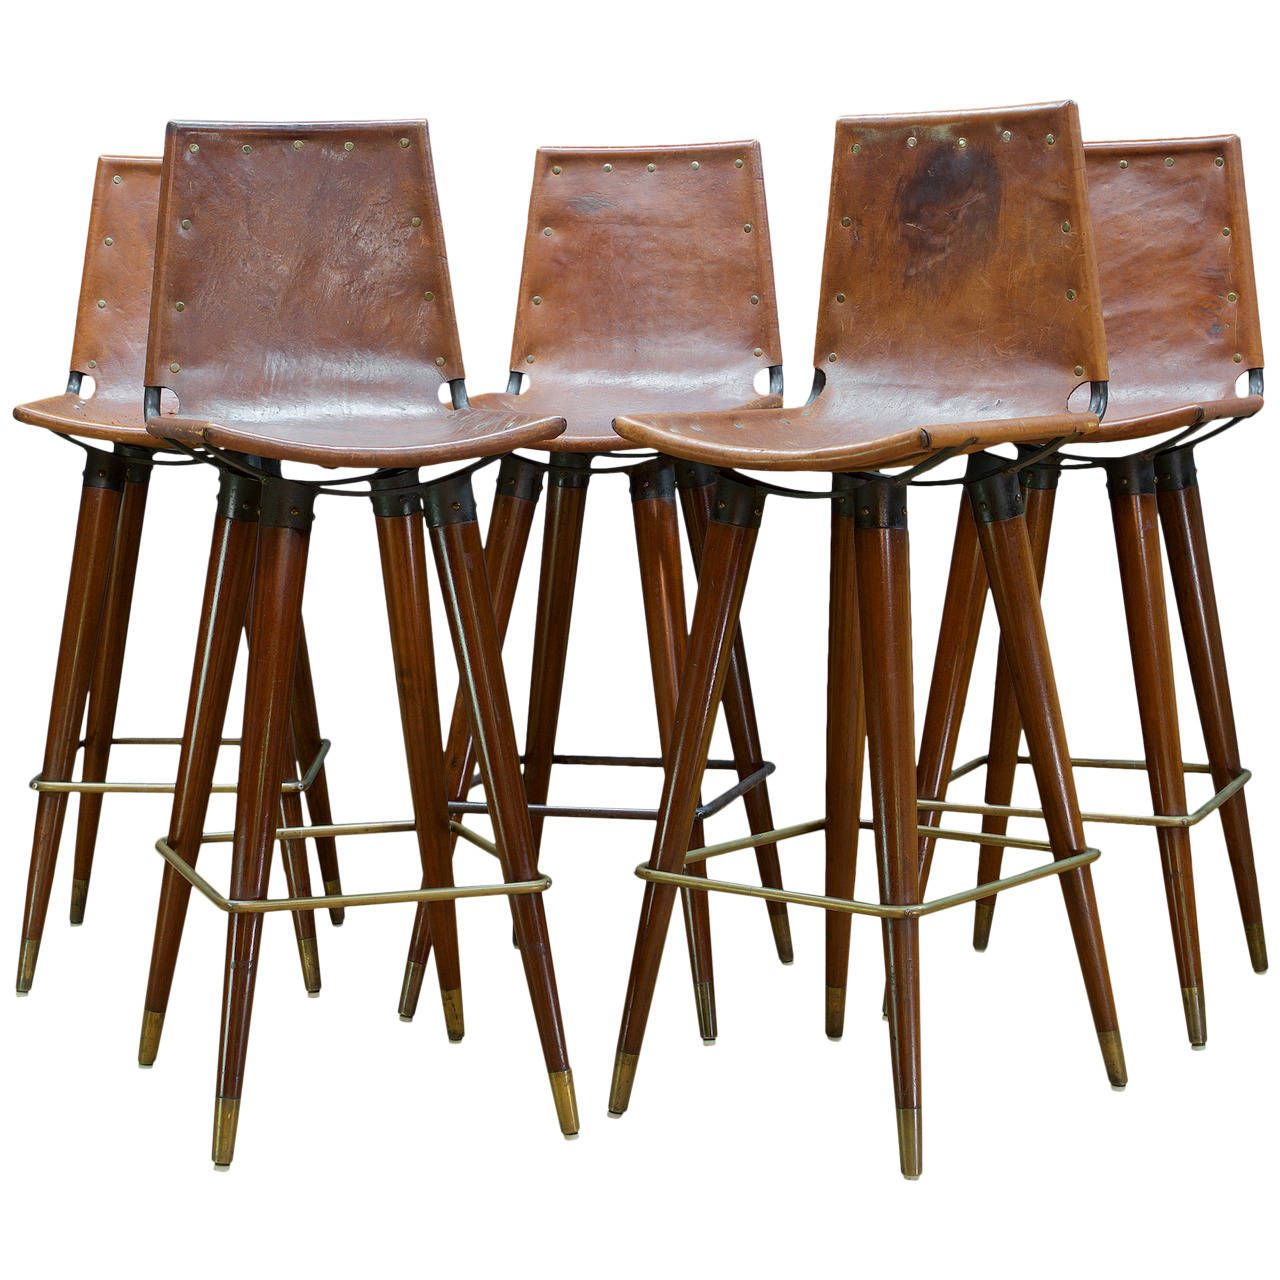 1960s Midcentury Leather Sling Iron Bar Stools Vintage Bar Stools Iron Bar Stools Leather Bar Stools